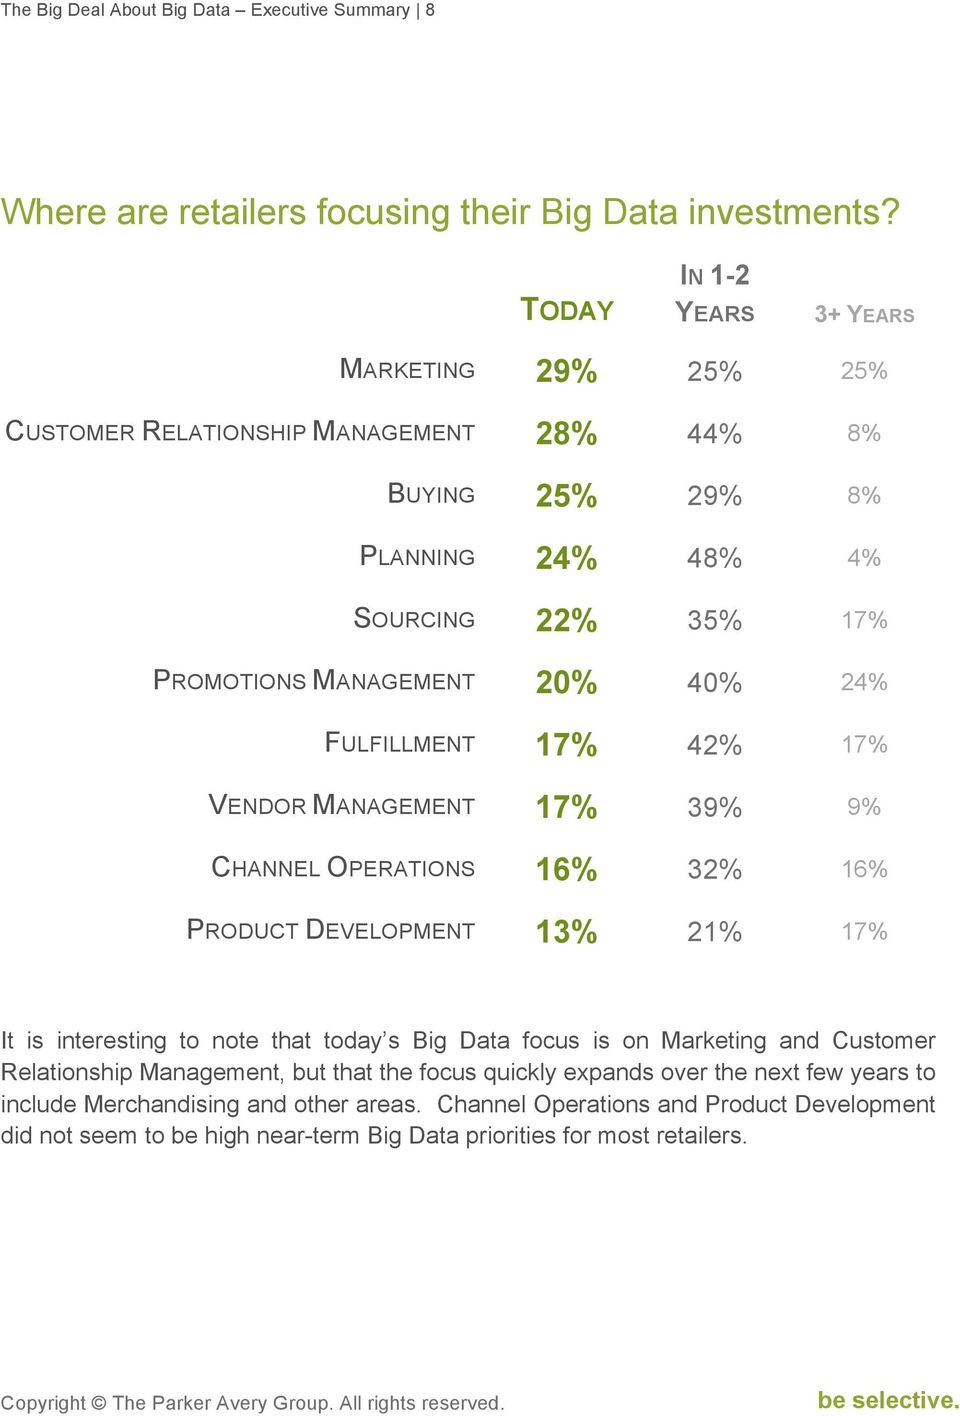 24% FULFILLMENT 17% 42% 17% VENDOR MANAGEMENT 17% 39% 9% CHANNEL OPERATIONS 16% 32% 16% PRODUCT DEVELOPMENT 13% 21% 17% It is interesting to note that today s Big Data focus is on